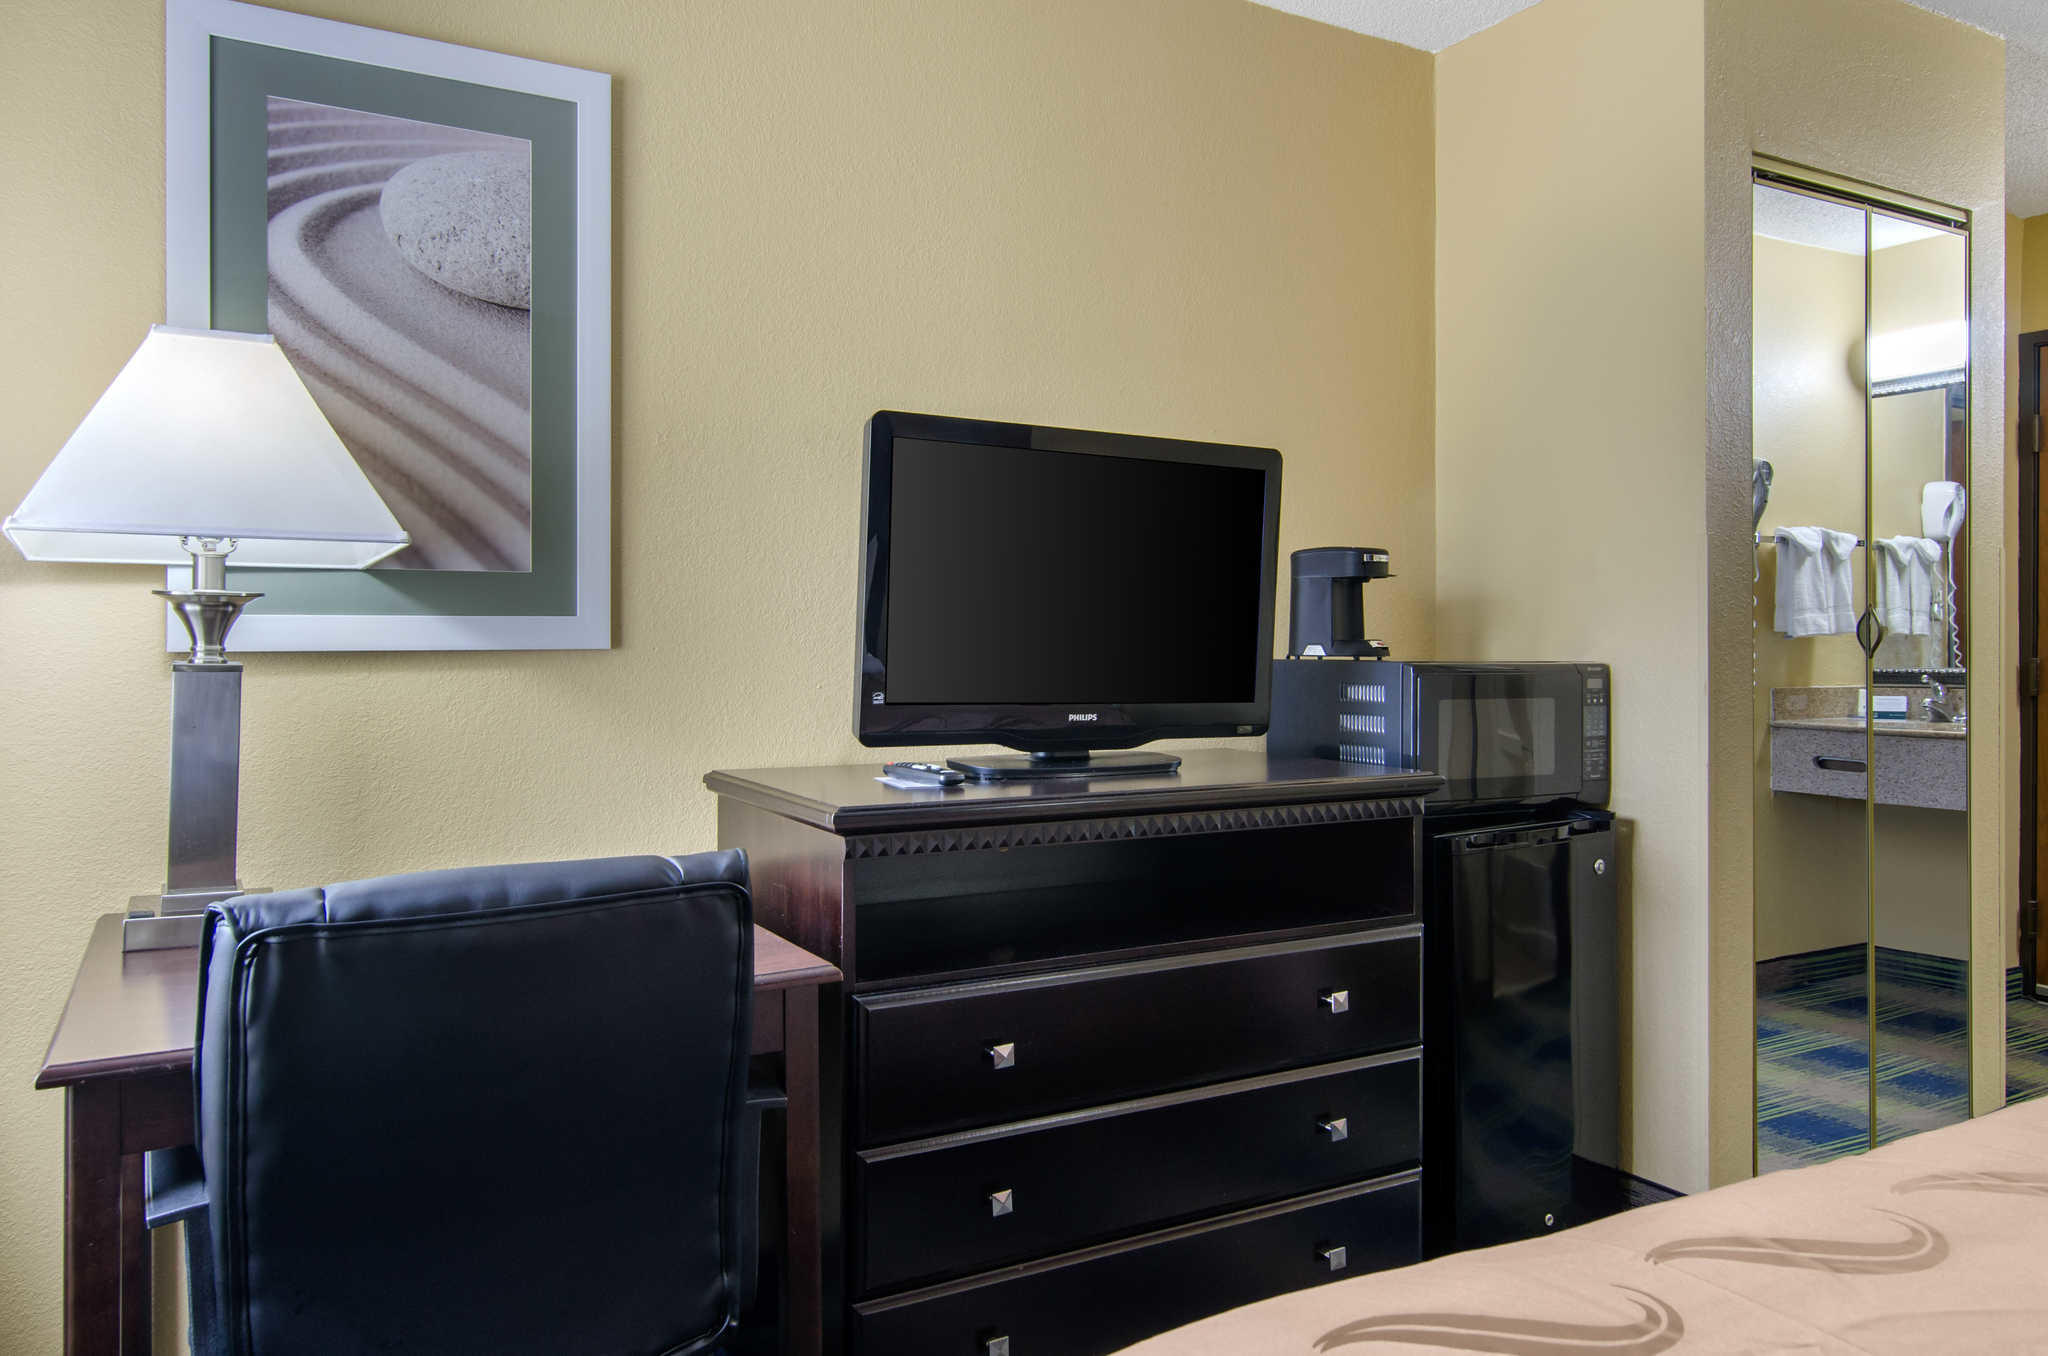 Quality Inn image 11